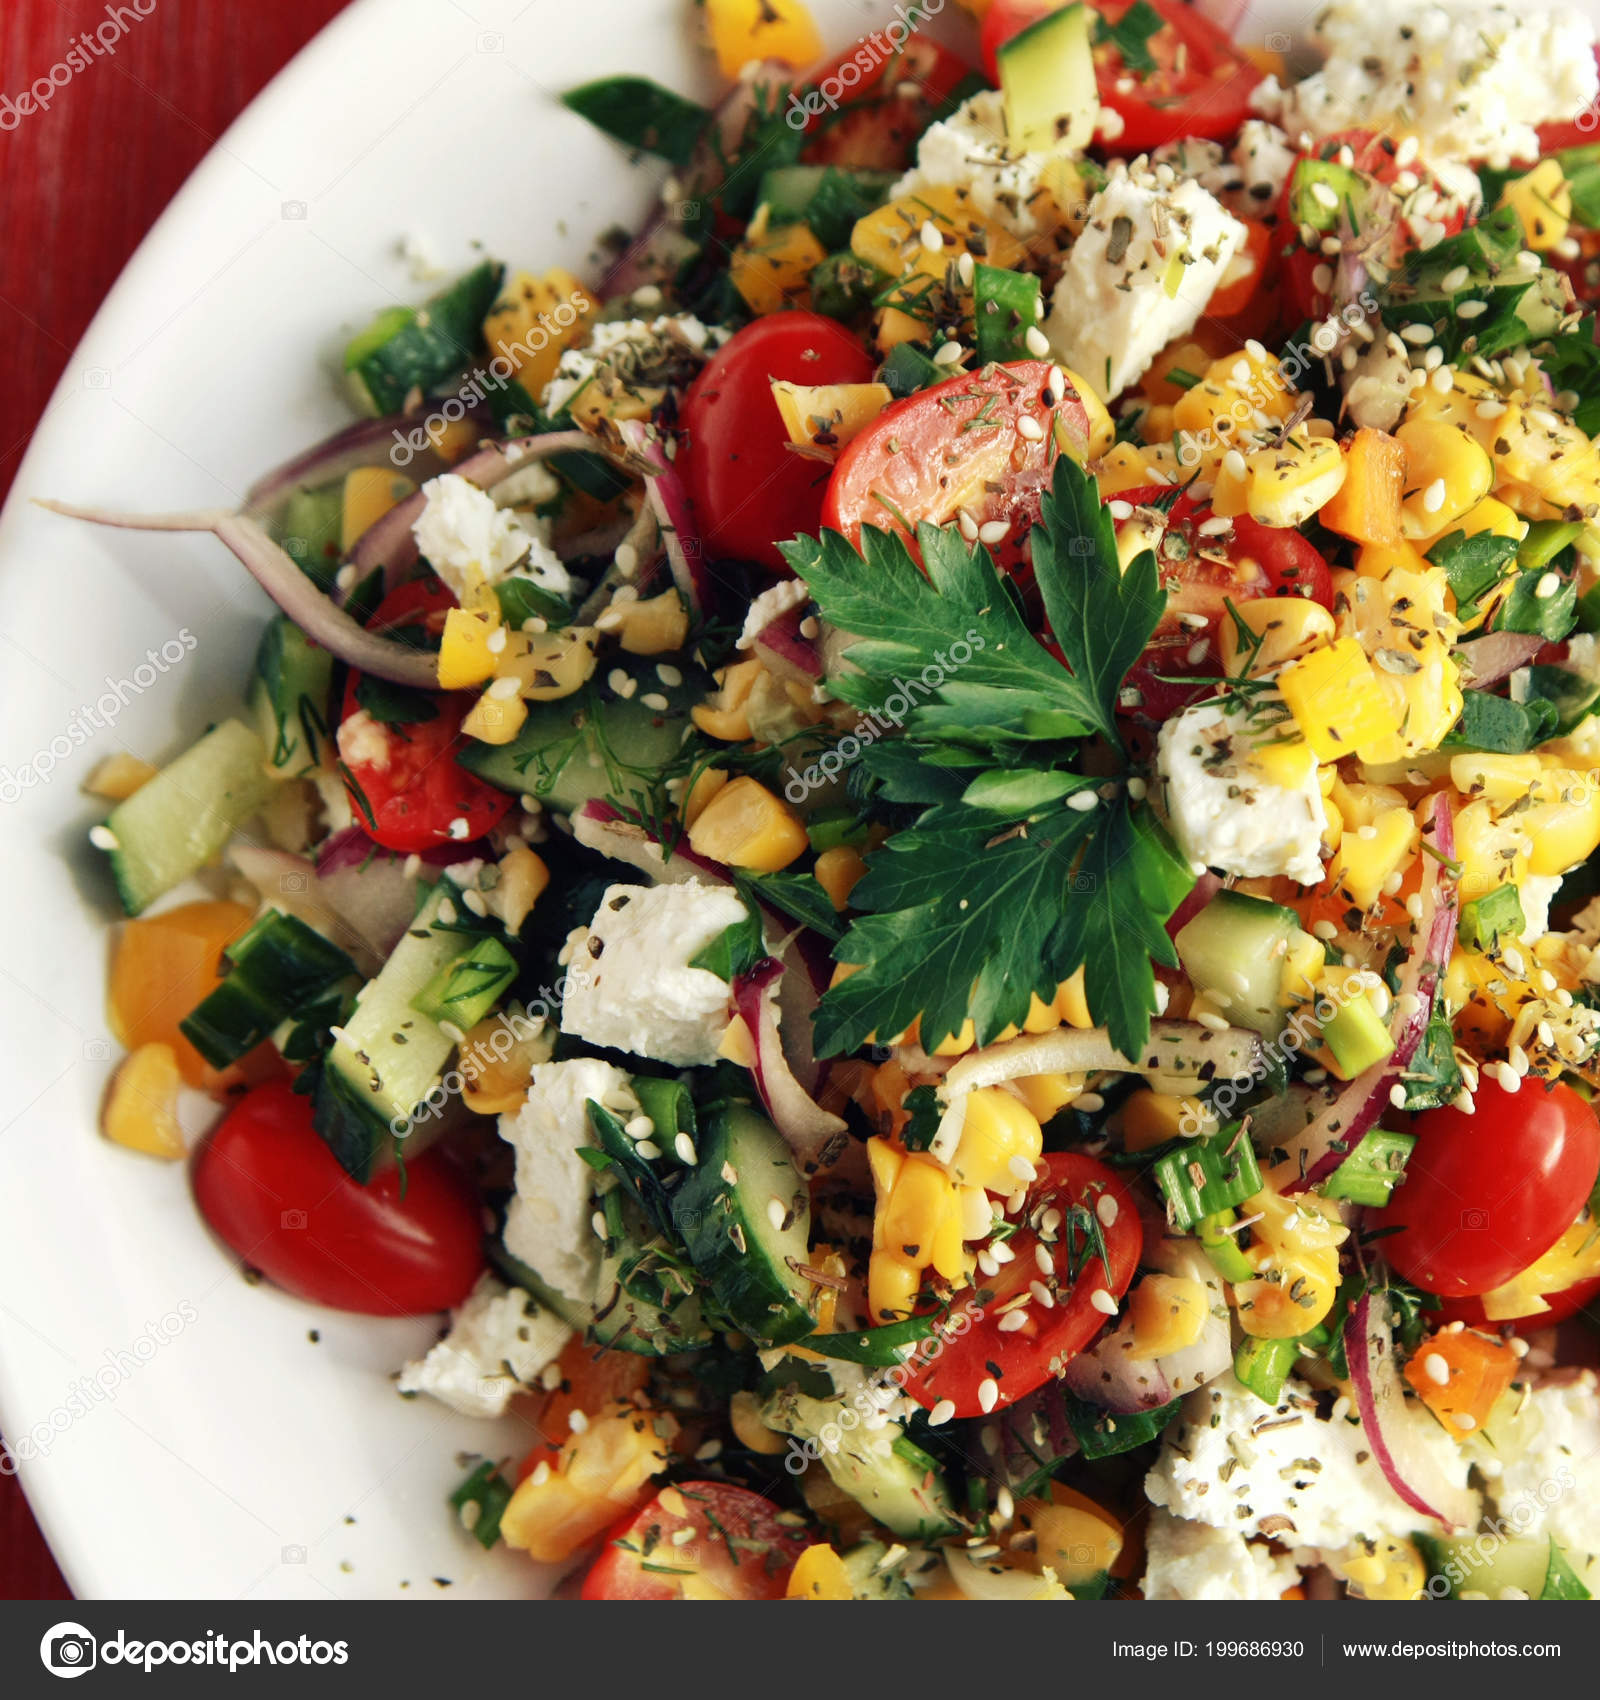 Pleasing Colorful Vegetable Mix Simple Low Calories Salad Cherry Interior Design Ideas Clesiryabchikinfo